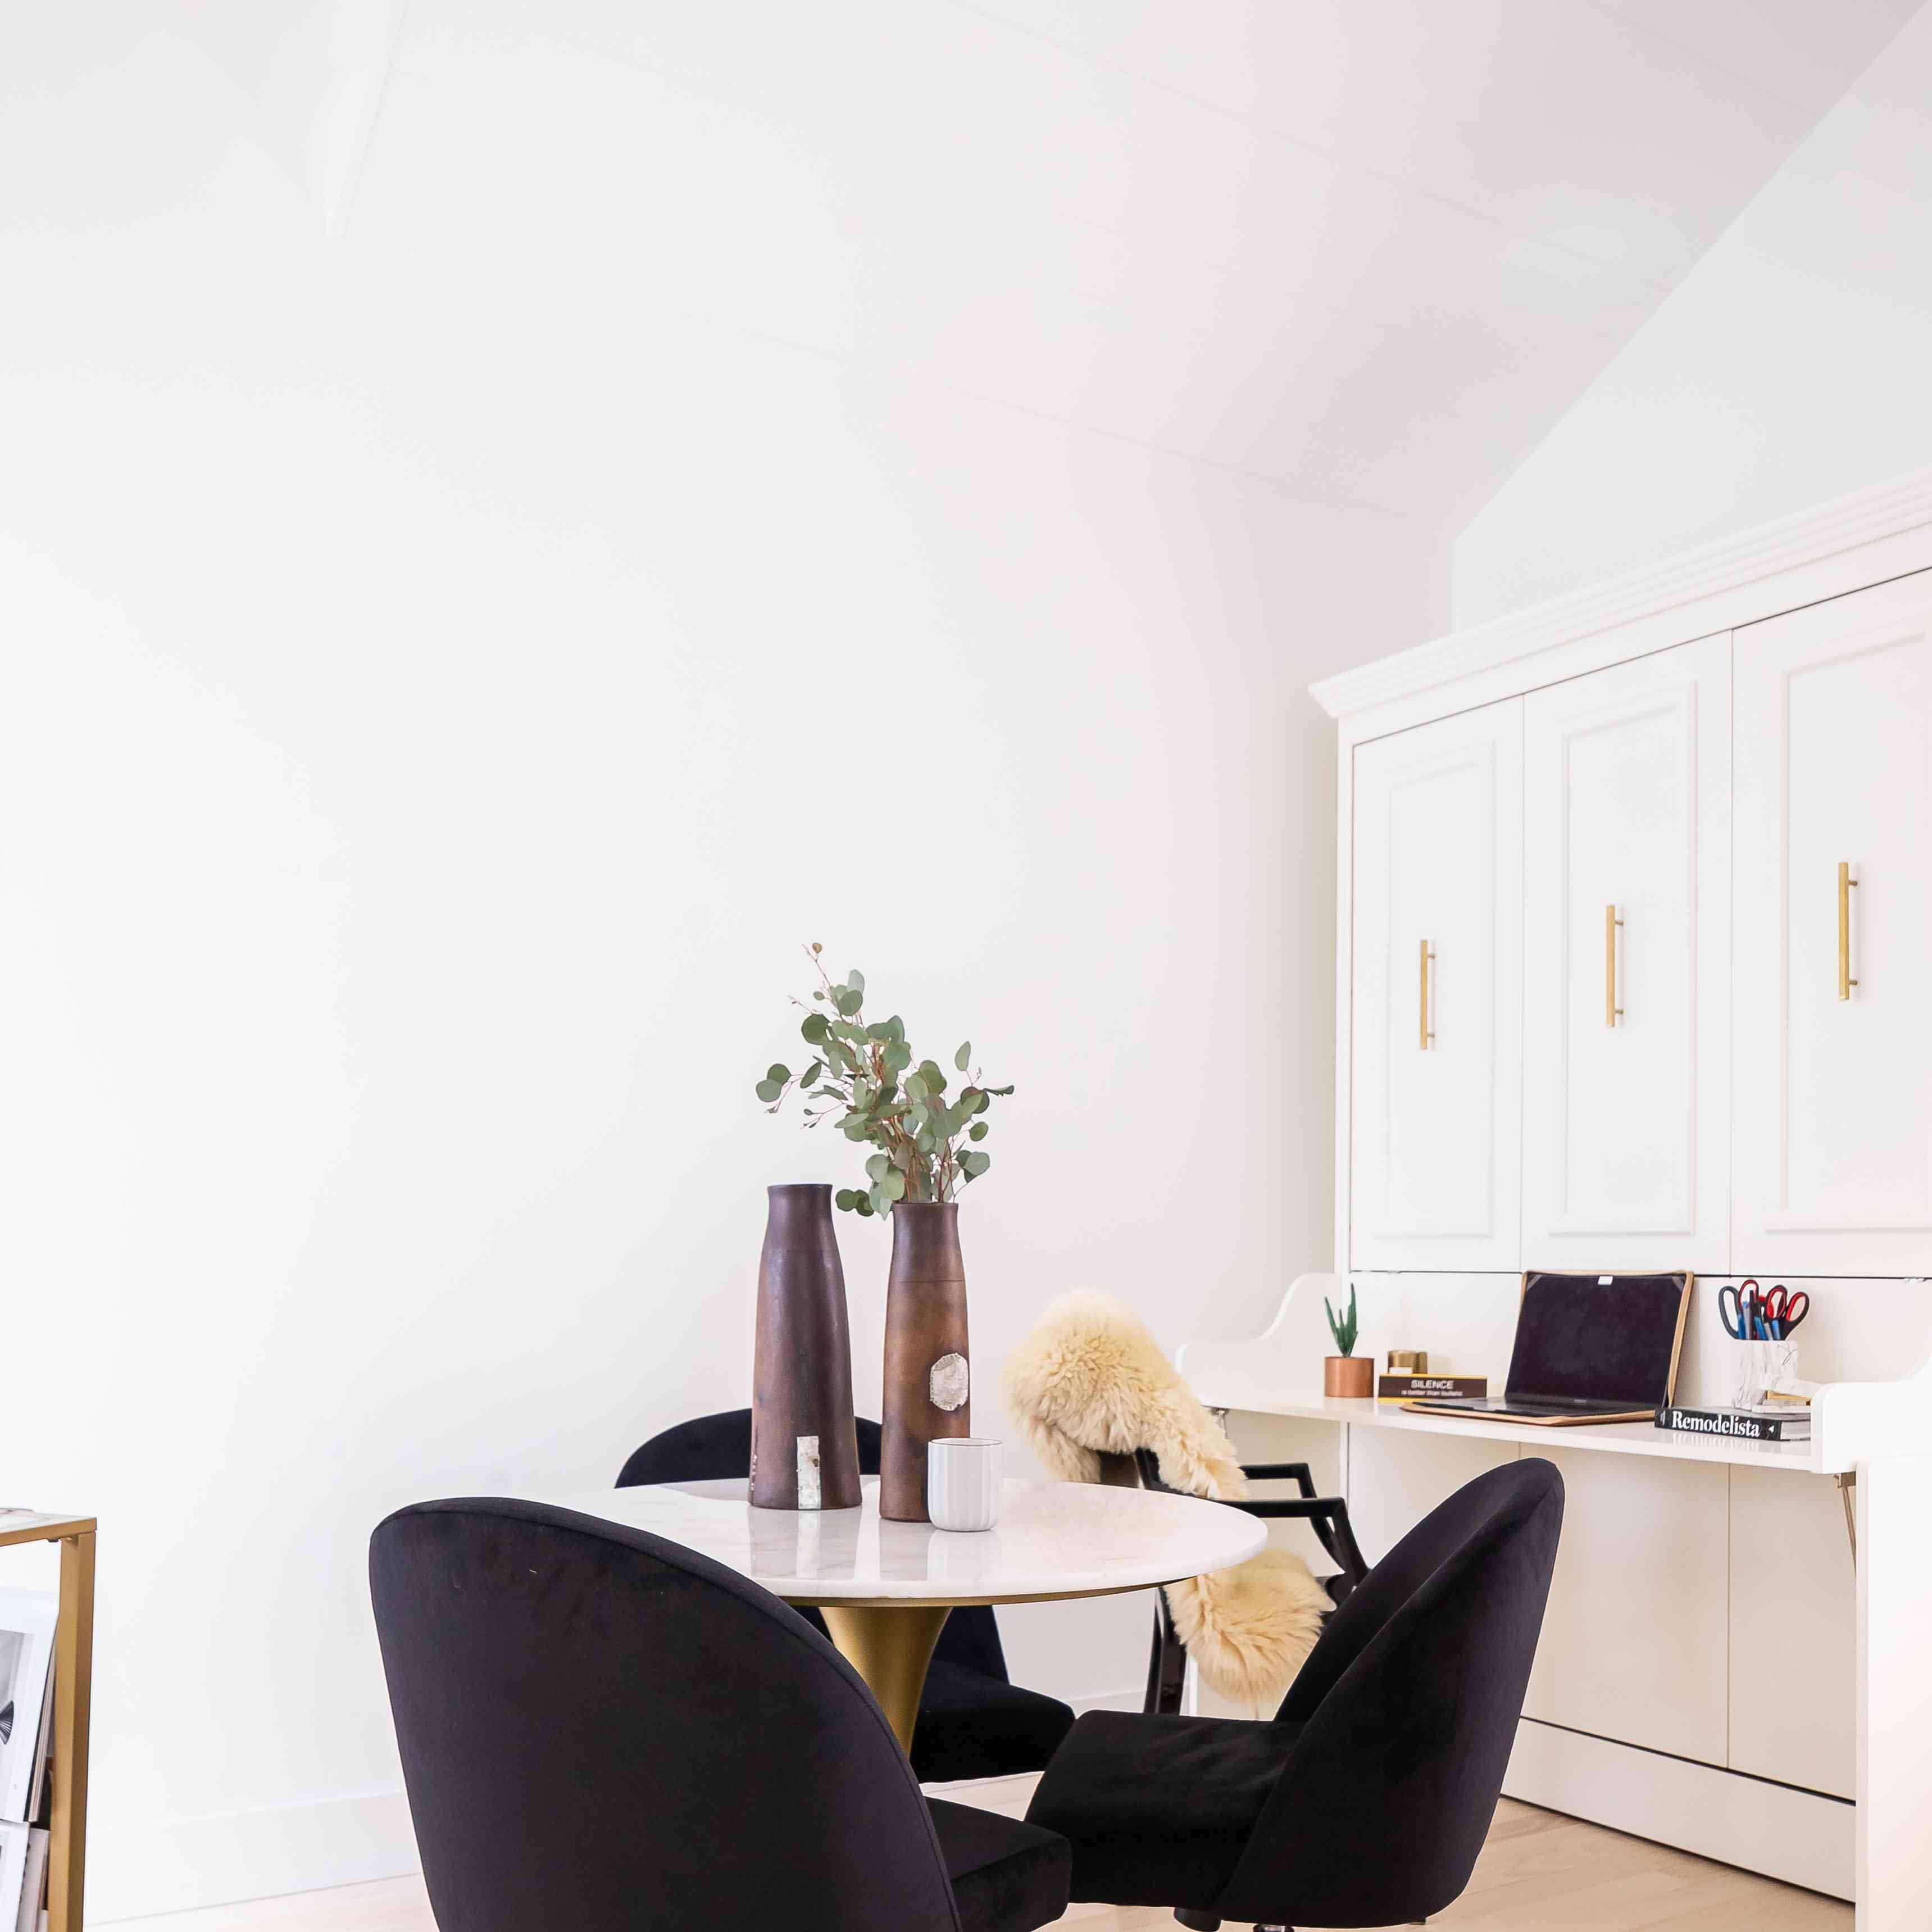 Simple office space with black rolling chairs.